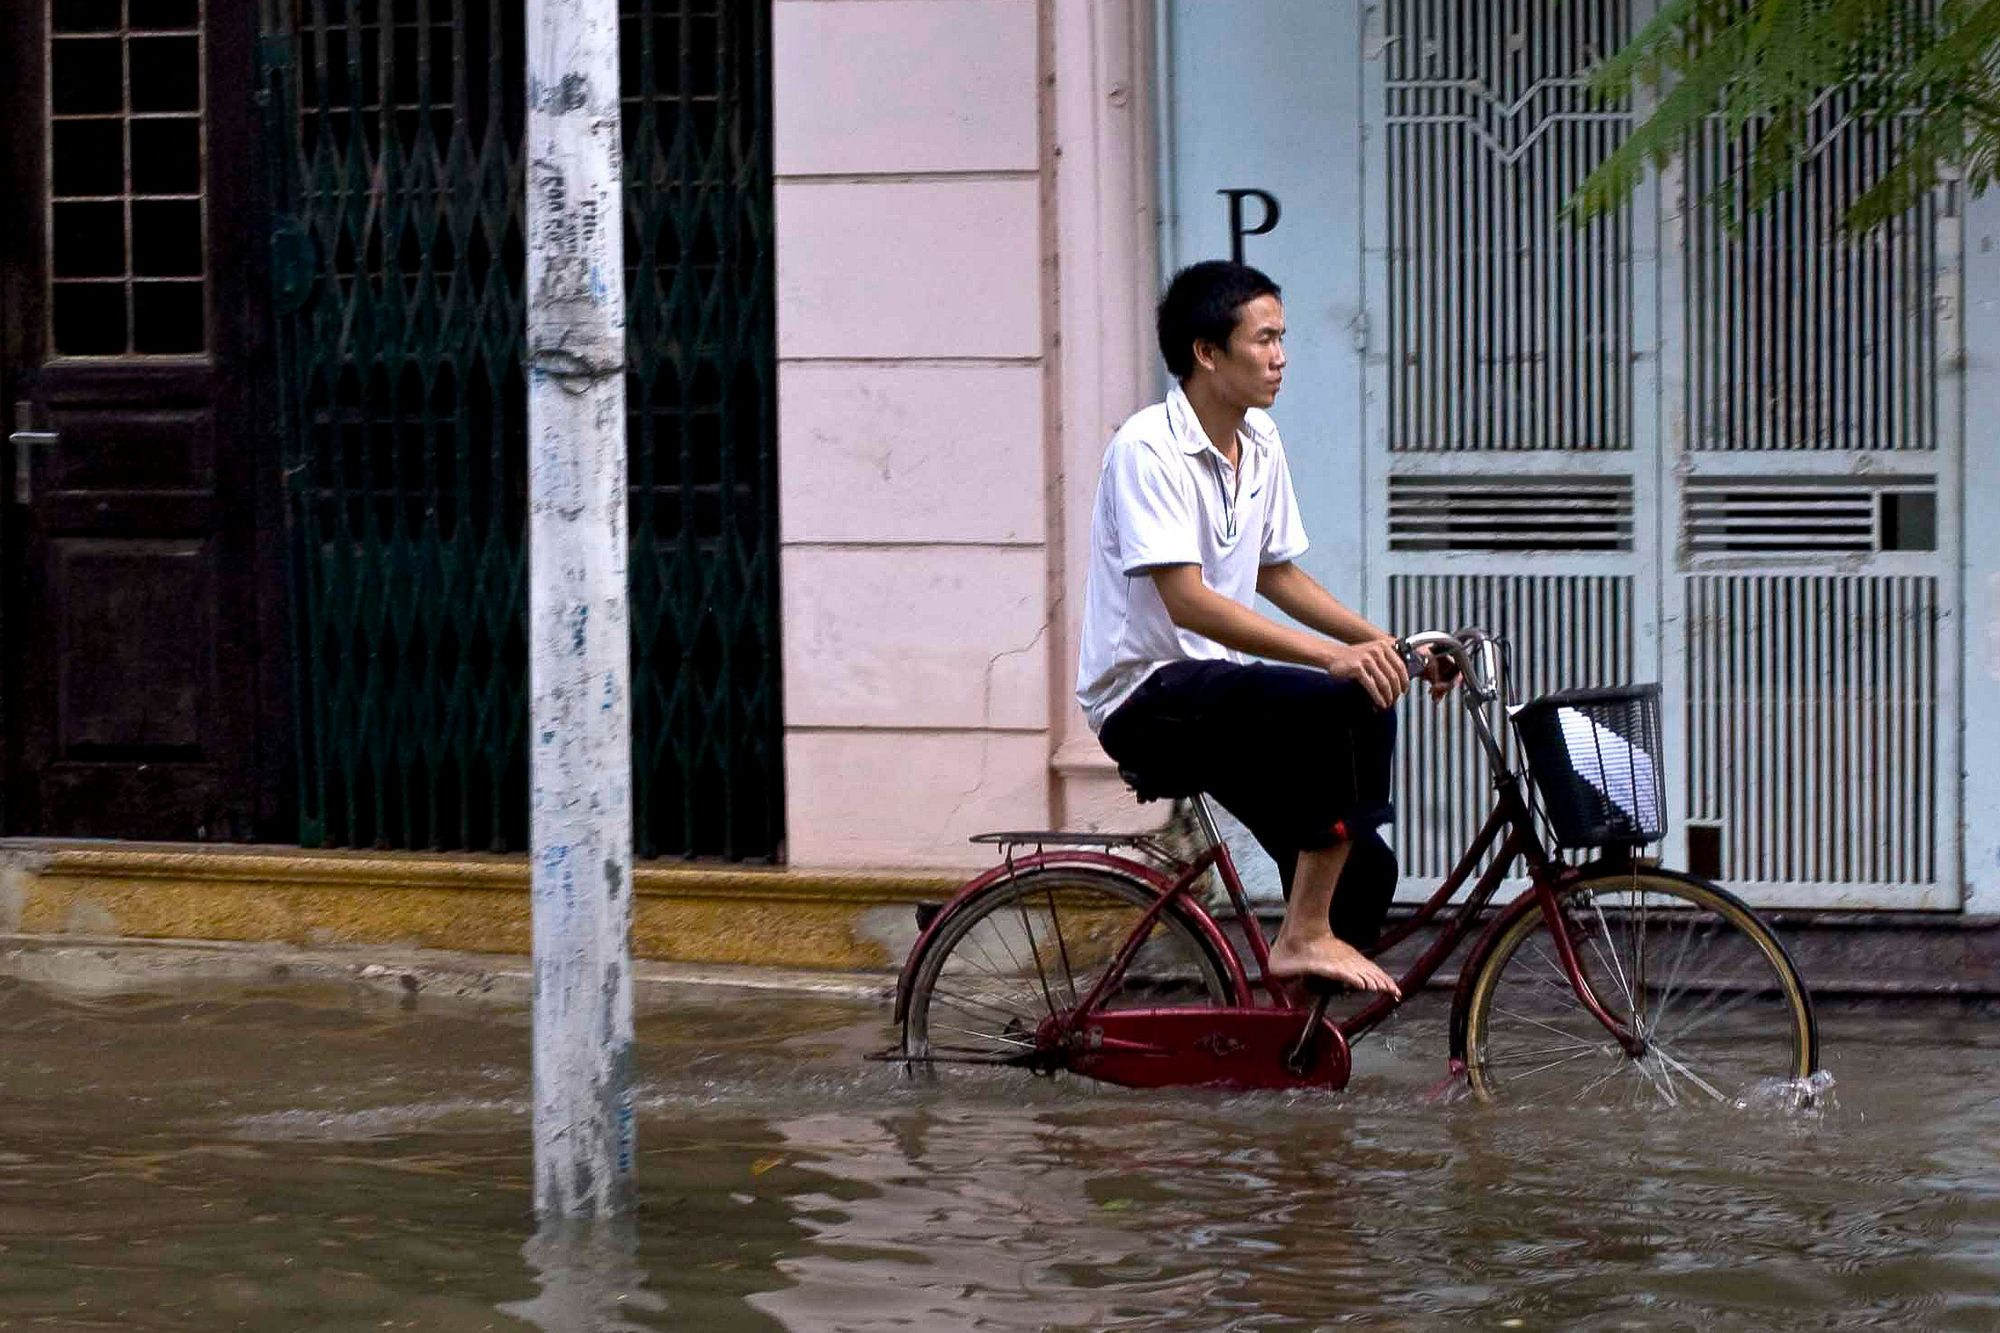 vietnam_hanoi_flood_streets_bike.jpg